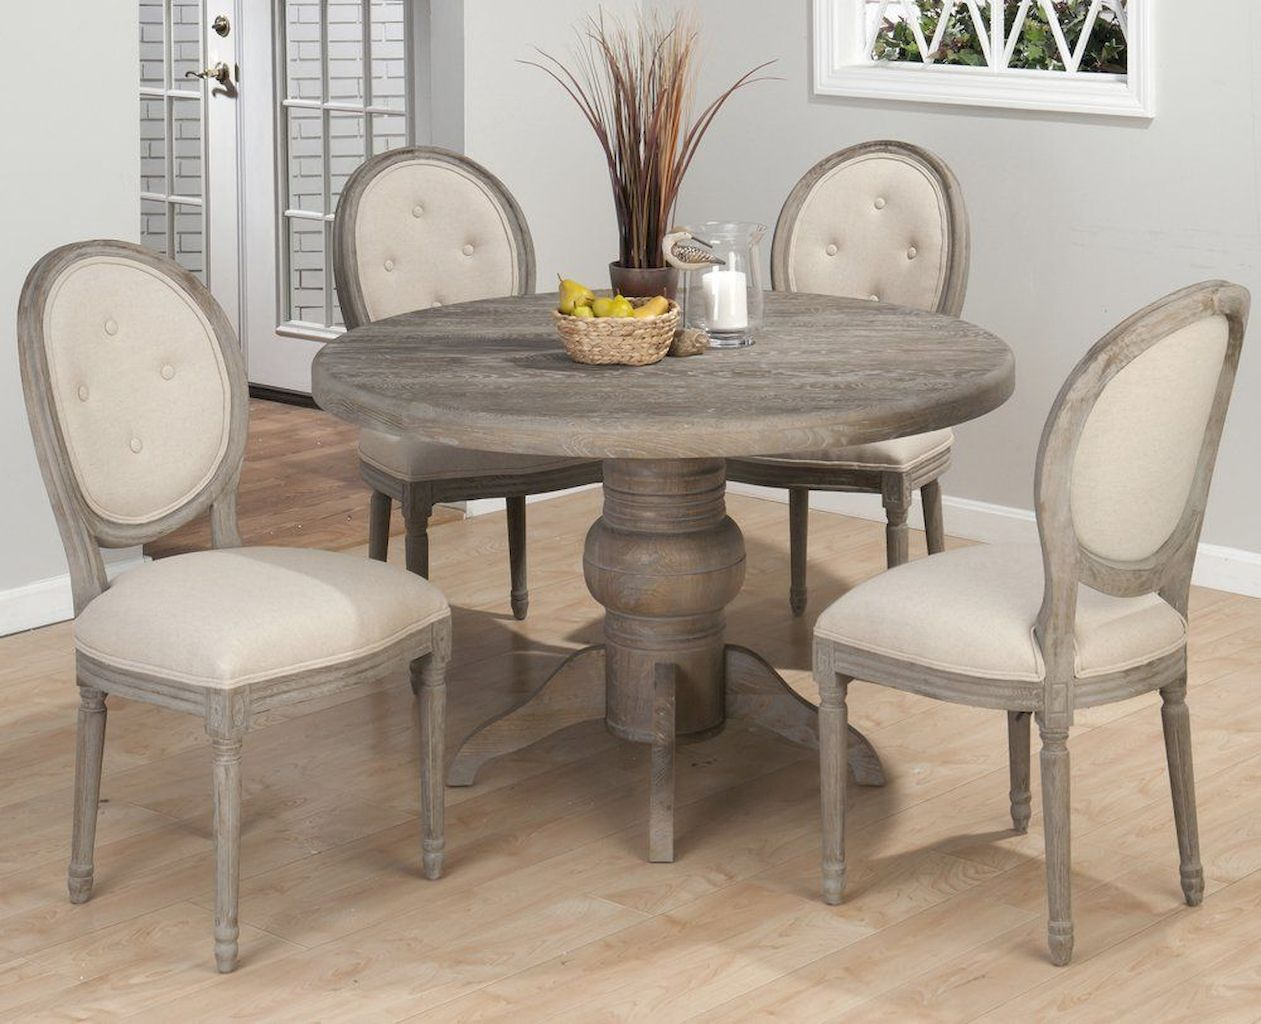 45 Dinning Table Design For Small Room Round Dining Room Sets